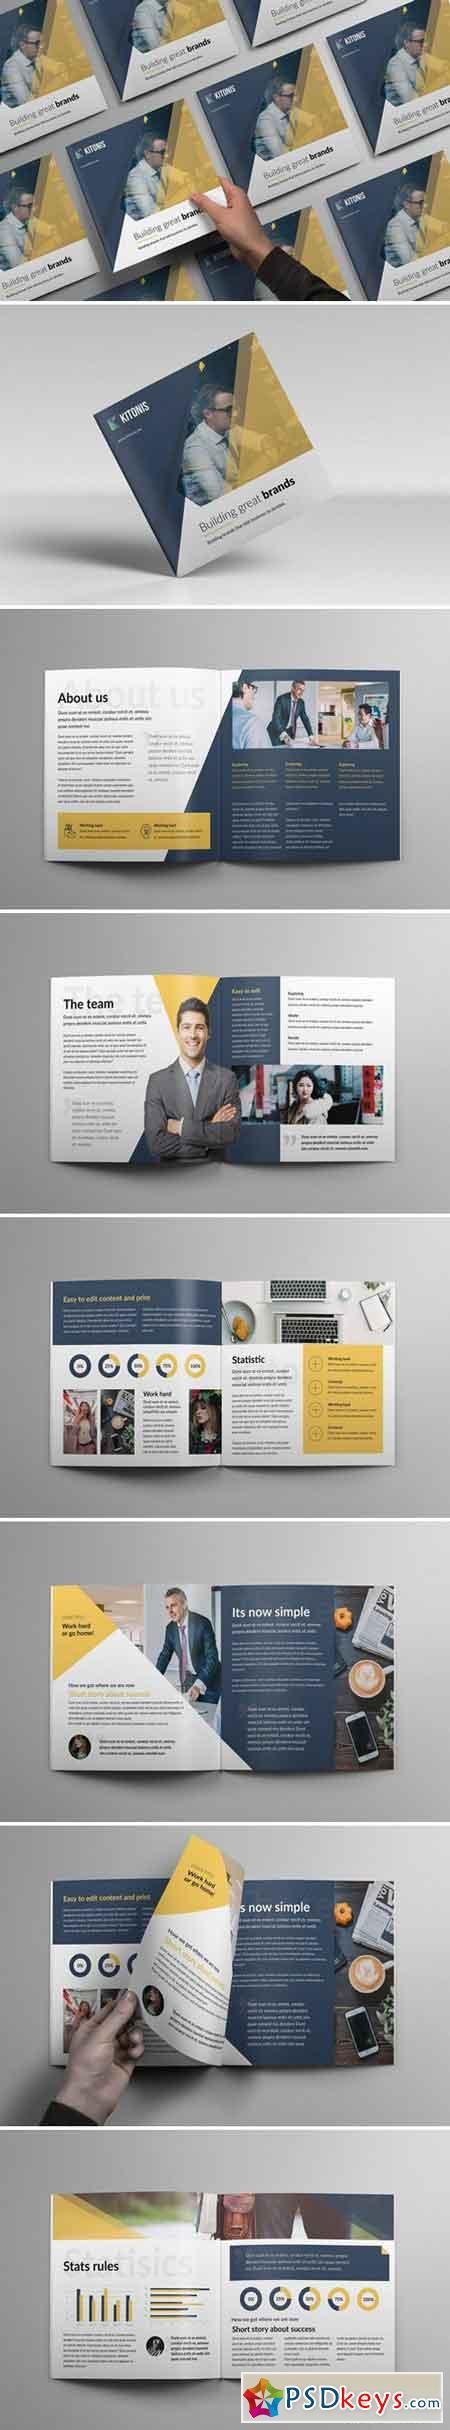 Modern Square Business Brochure 2204209